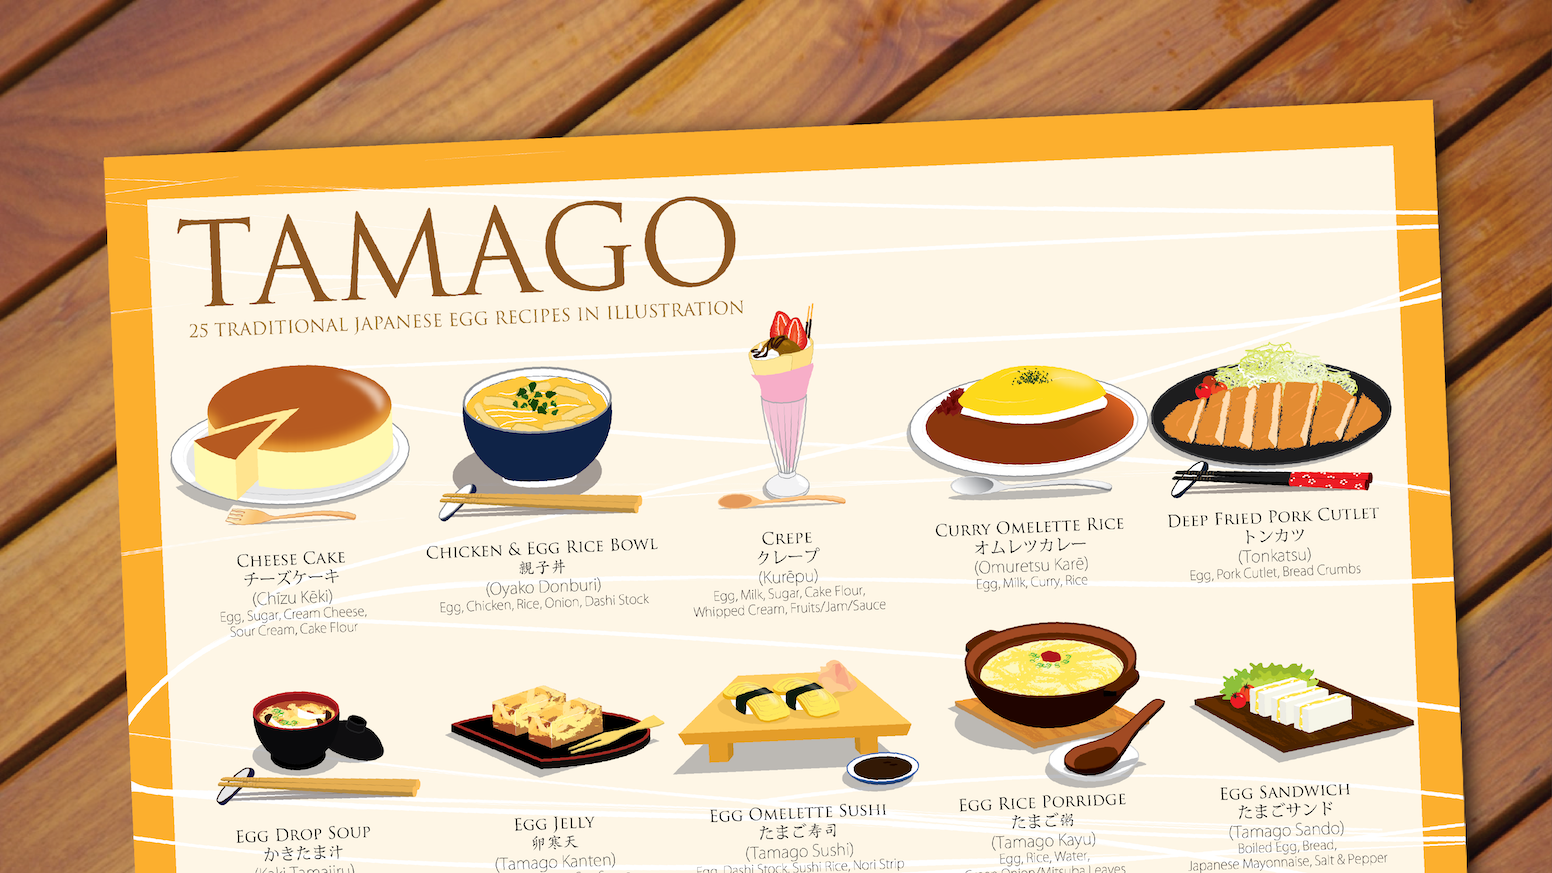 """""""Tamago"""" means egg in Japanese. This illustrated guide will inspire you with 25 authentic Japanese dishes you can make with EGGS!"""